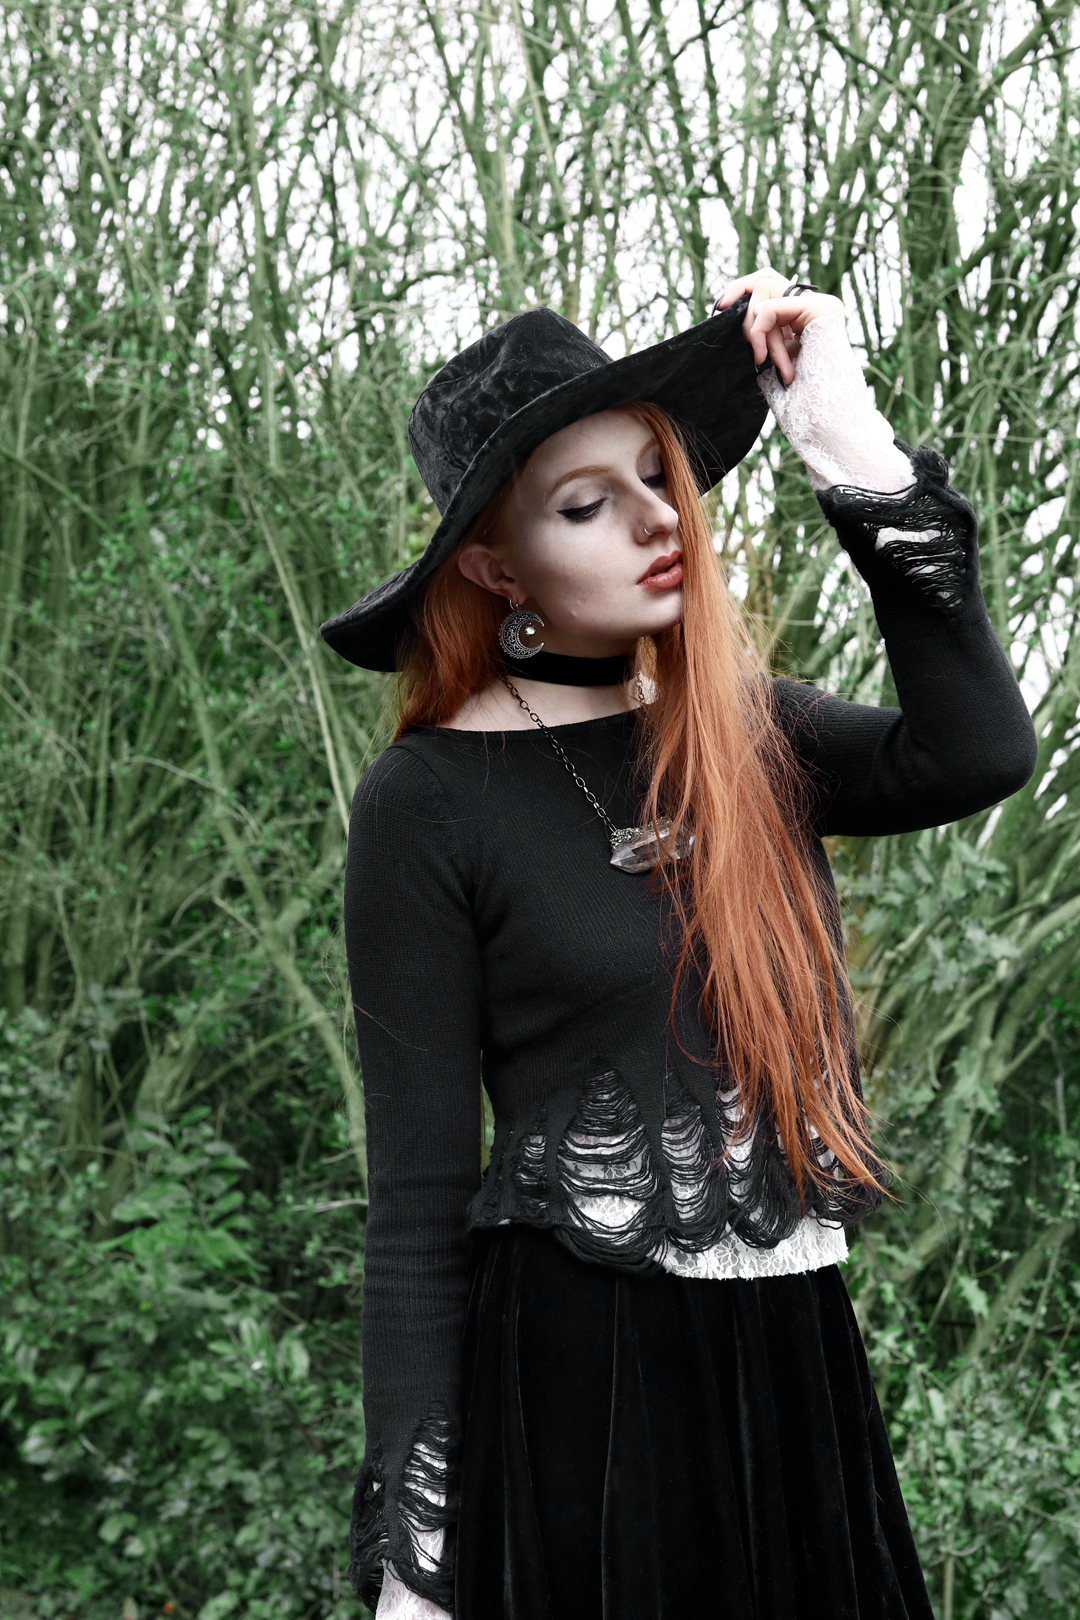 Olivia Emily wears Killstar Lestat shredded knit crop sweater, Killstar Velvet Witch Brim hat, Regalrose Velvet Choker, Serpents Club Quartz necklace, Nyxturna Spike Ring, Rogue And Wolf matte black ring